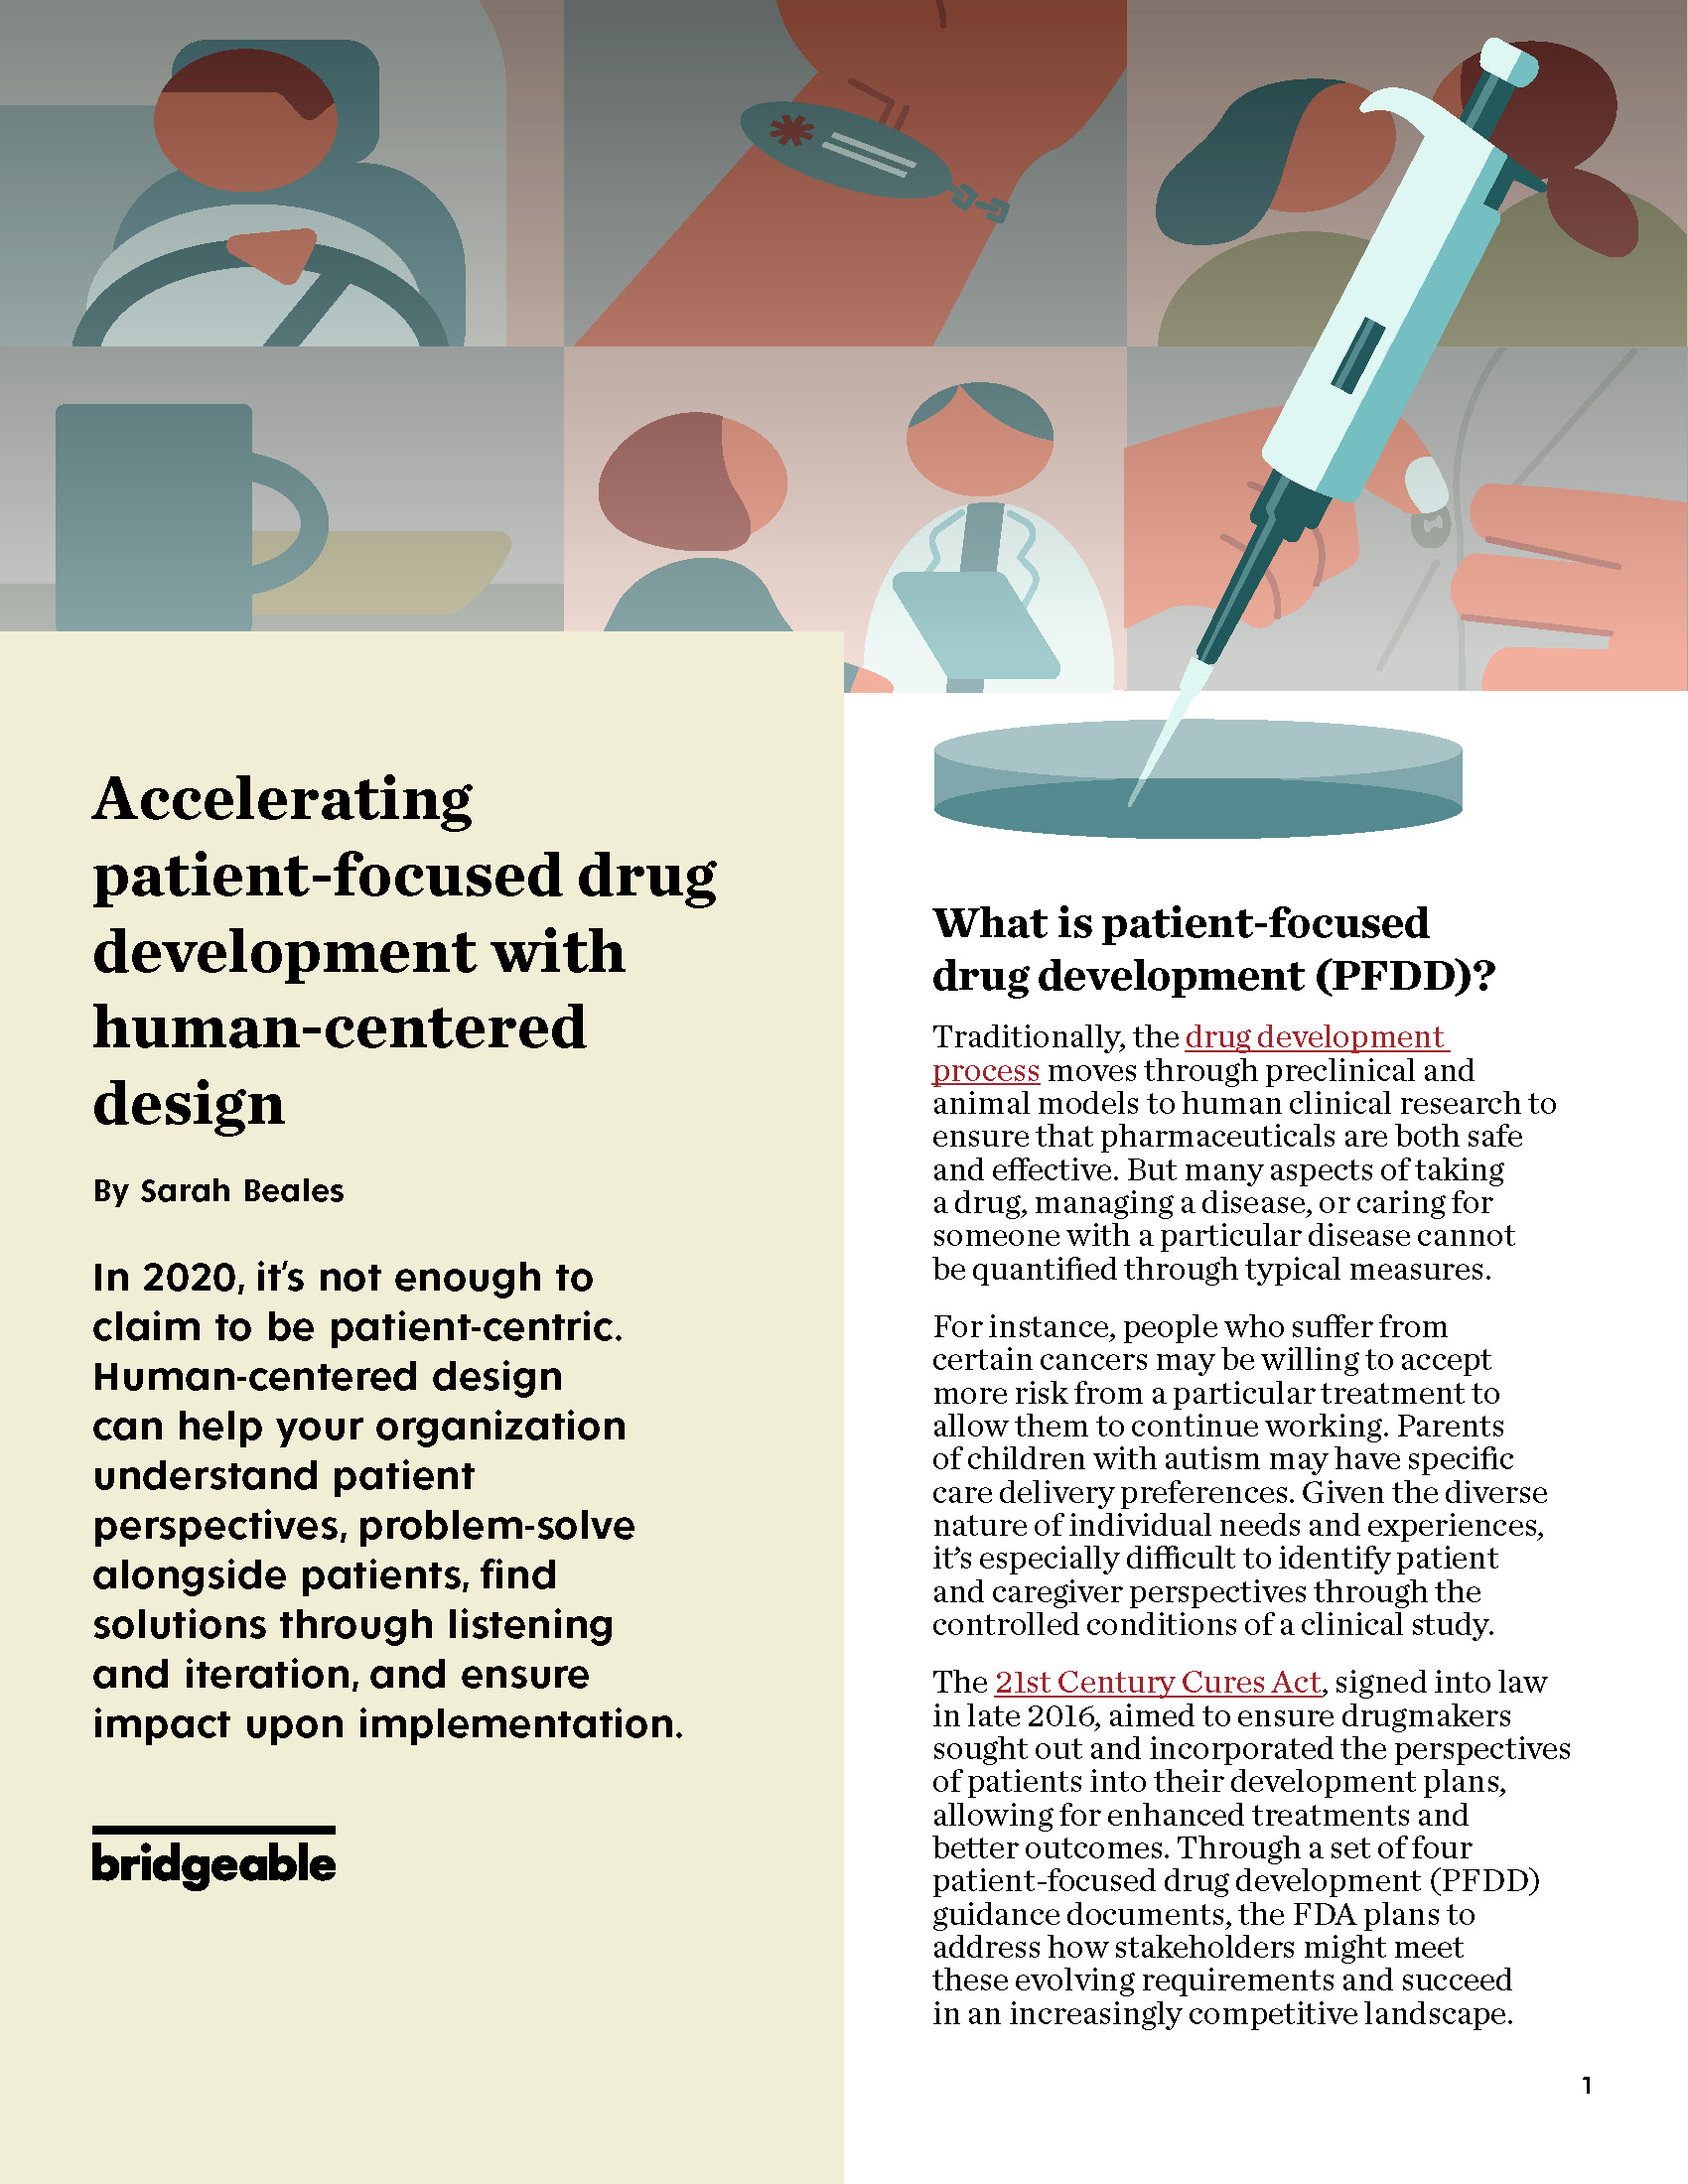 Accelerating patient-focused drug development with human-centred design _ Bridgeable_Page_1